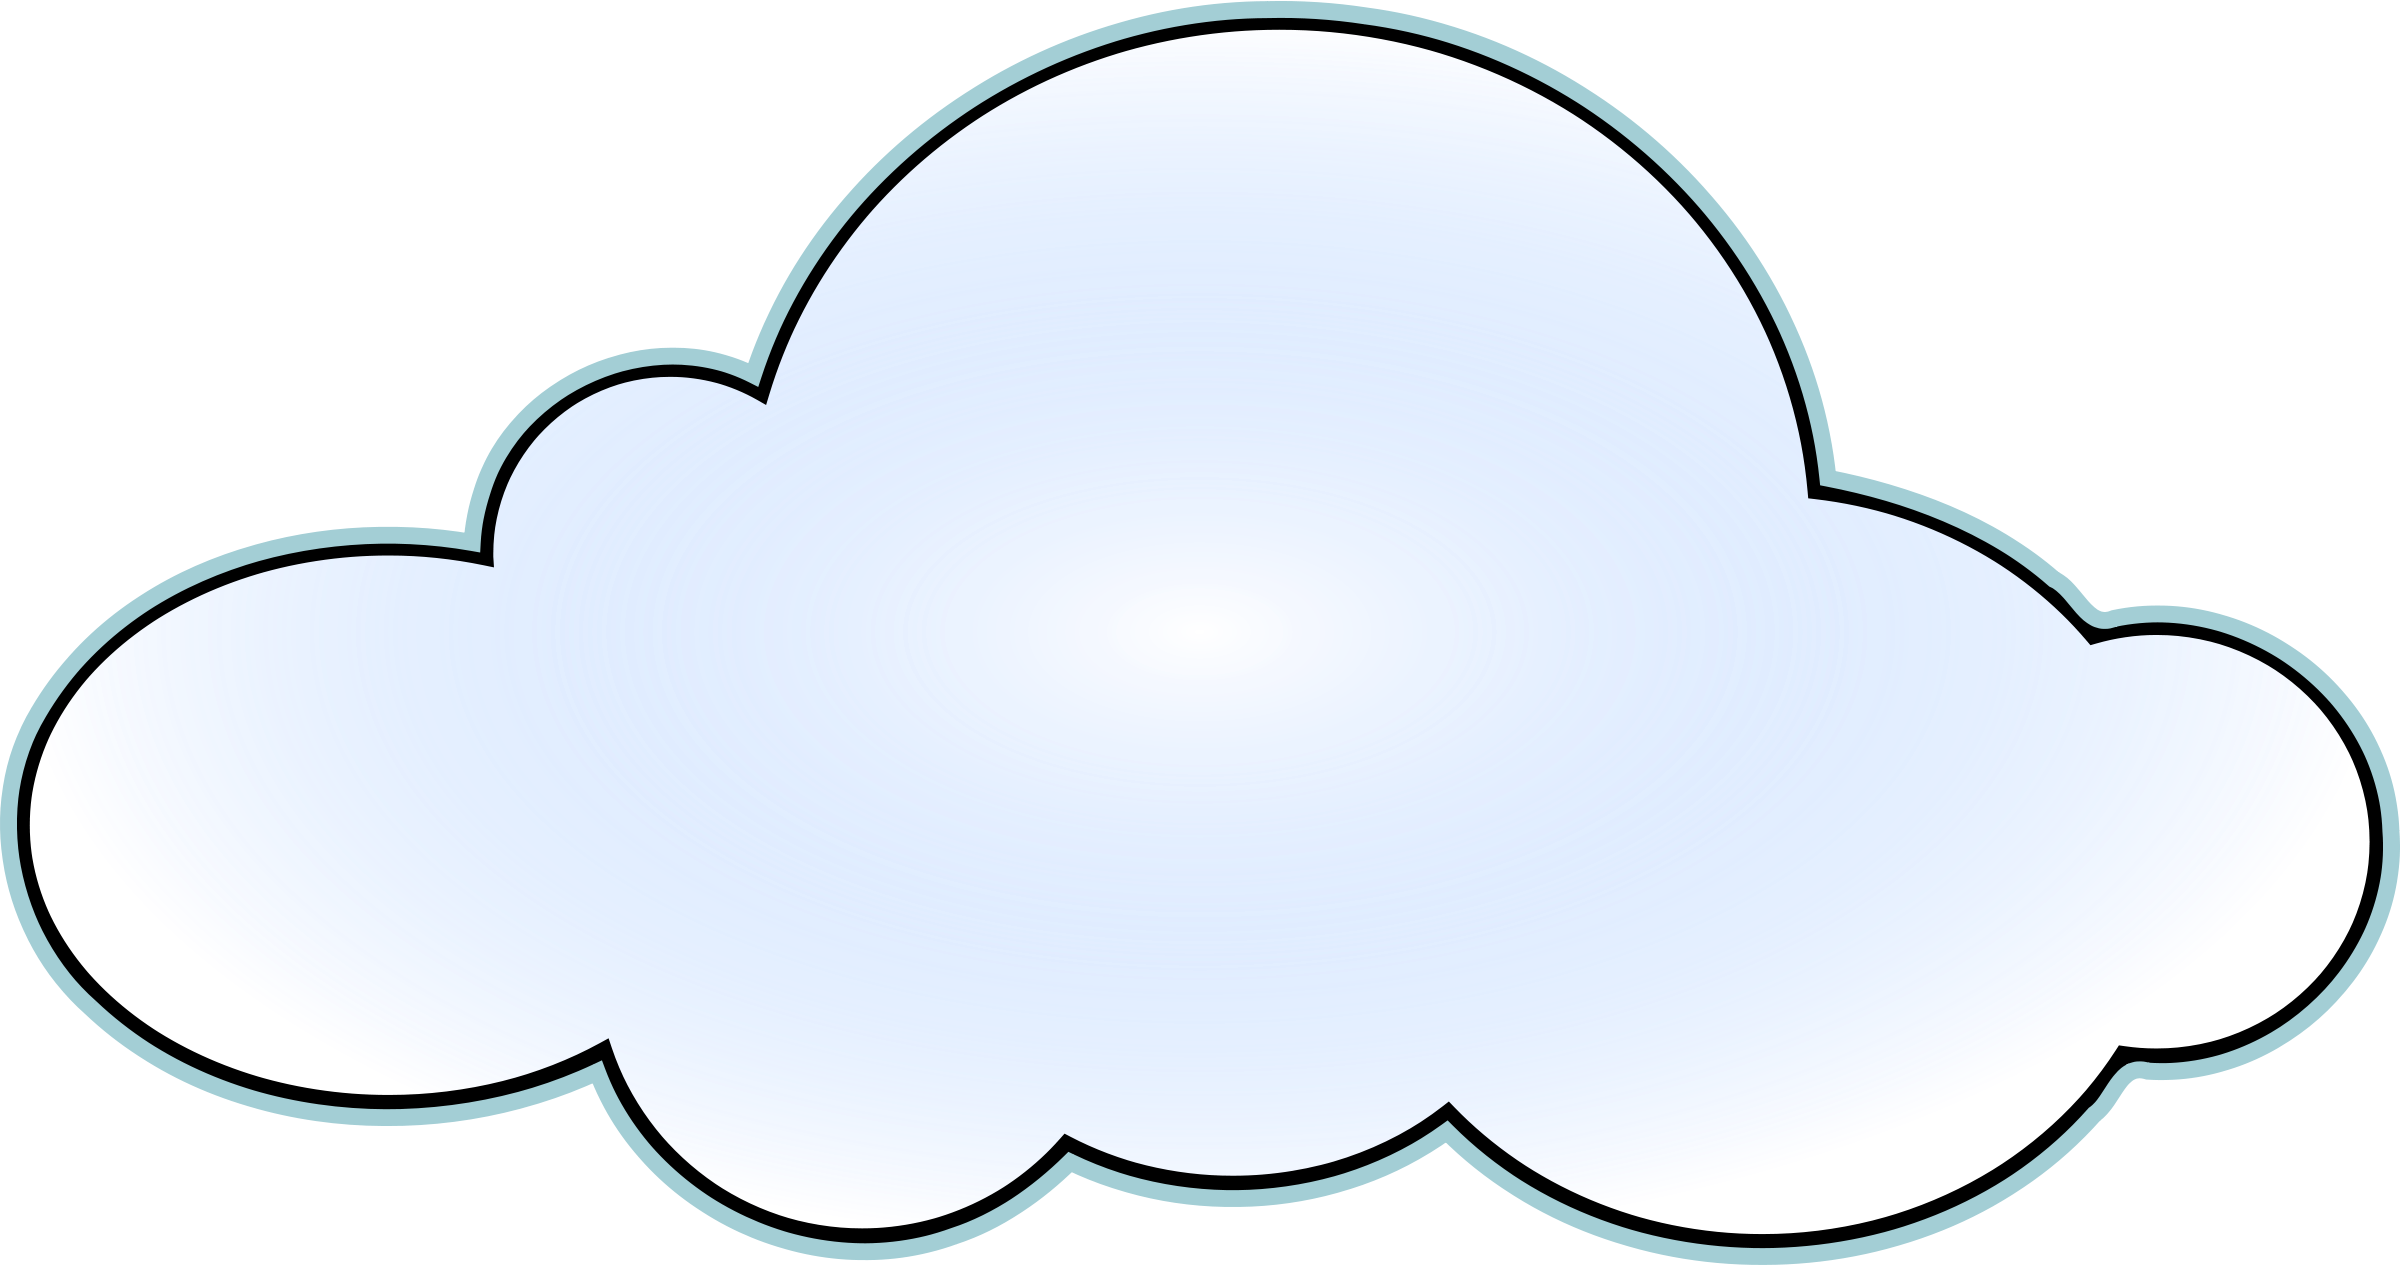 Clouds clipart logo. Cloud